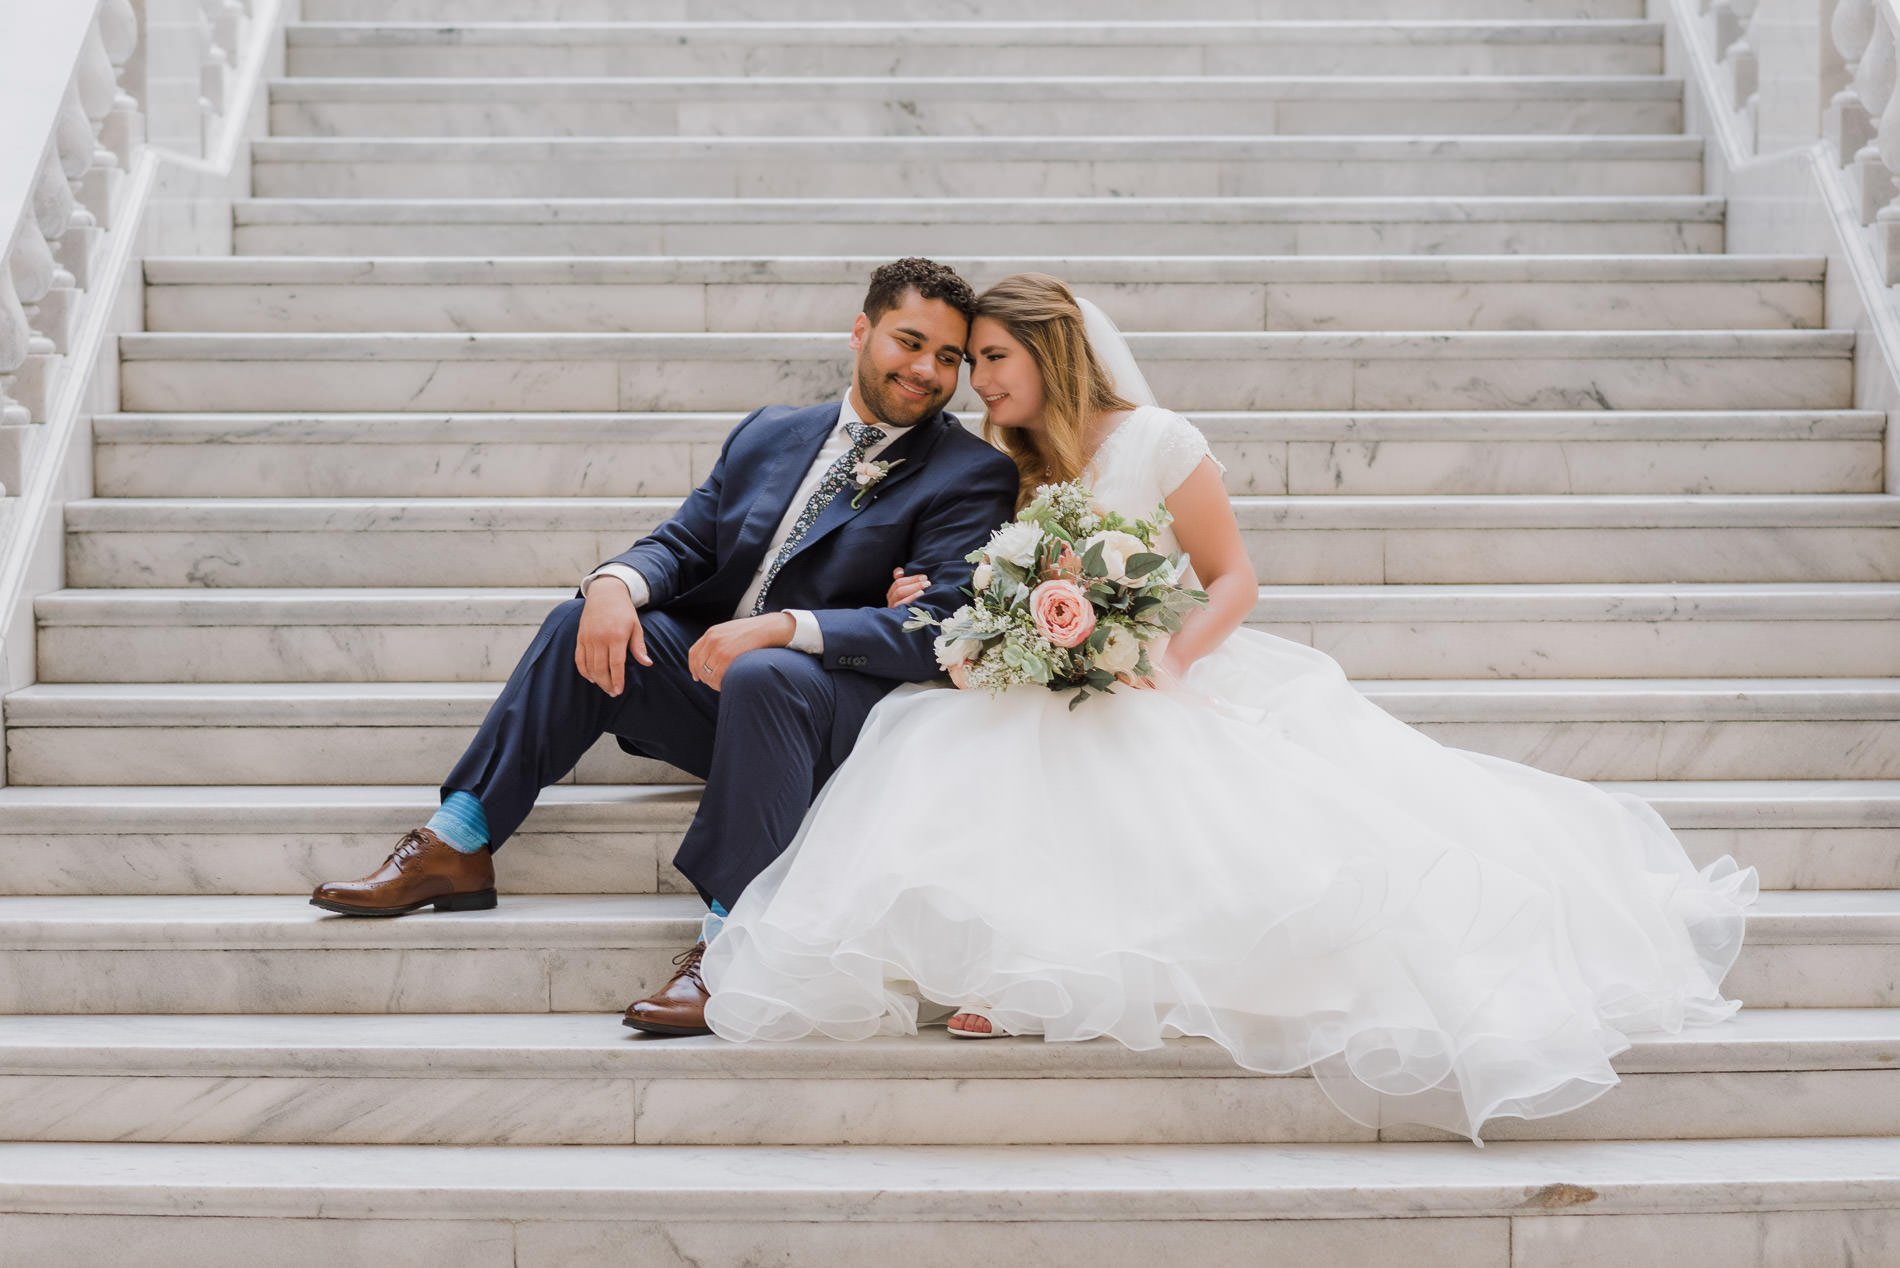 a bride and groom sitting on the steps snuggling for bridal photography at the utah state capitol